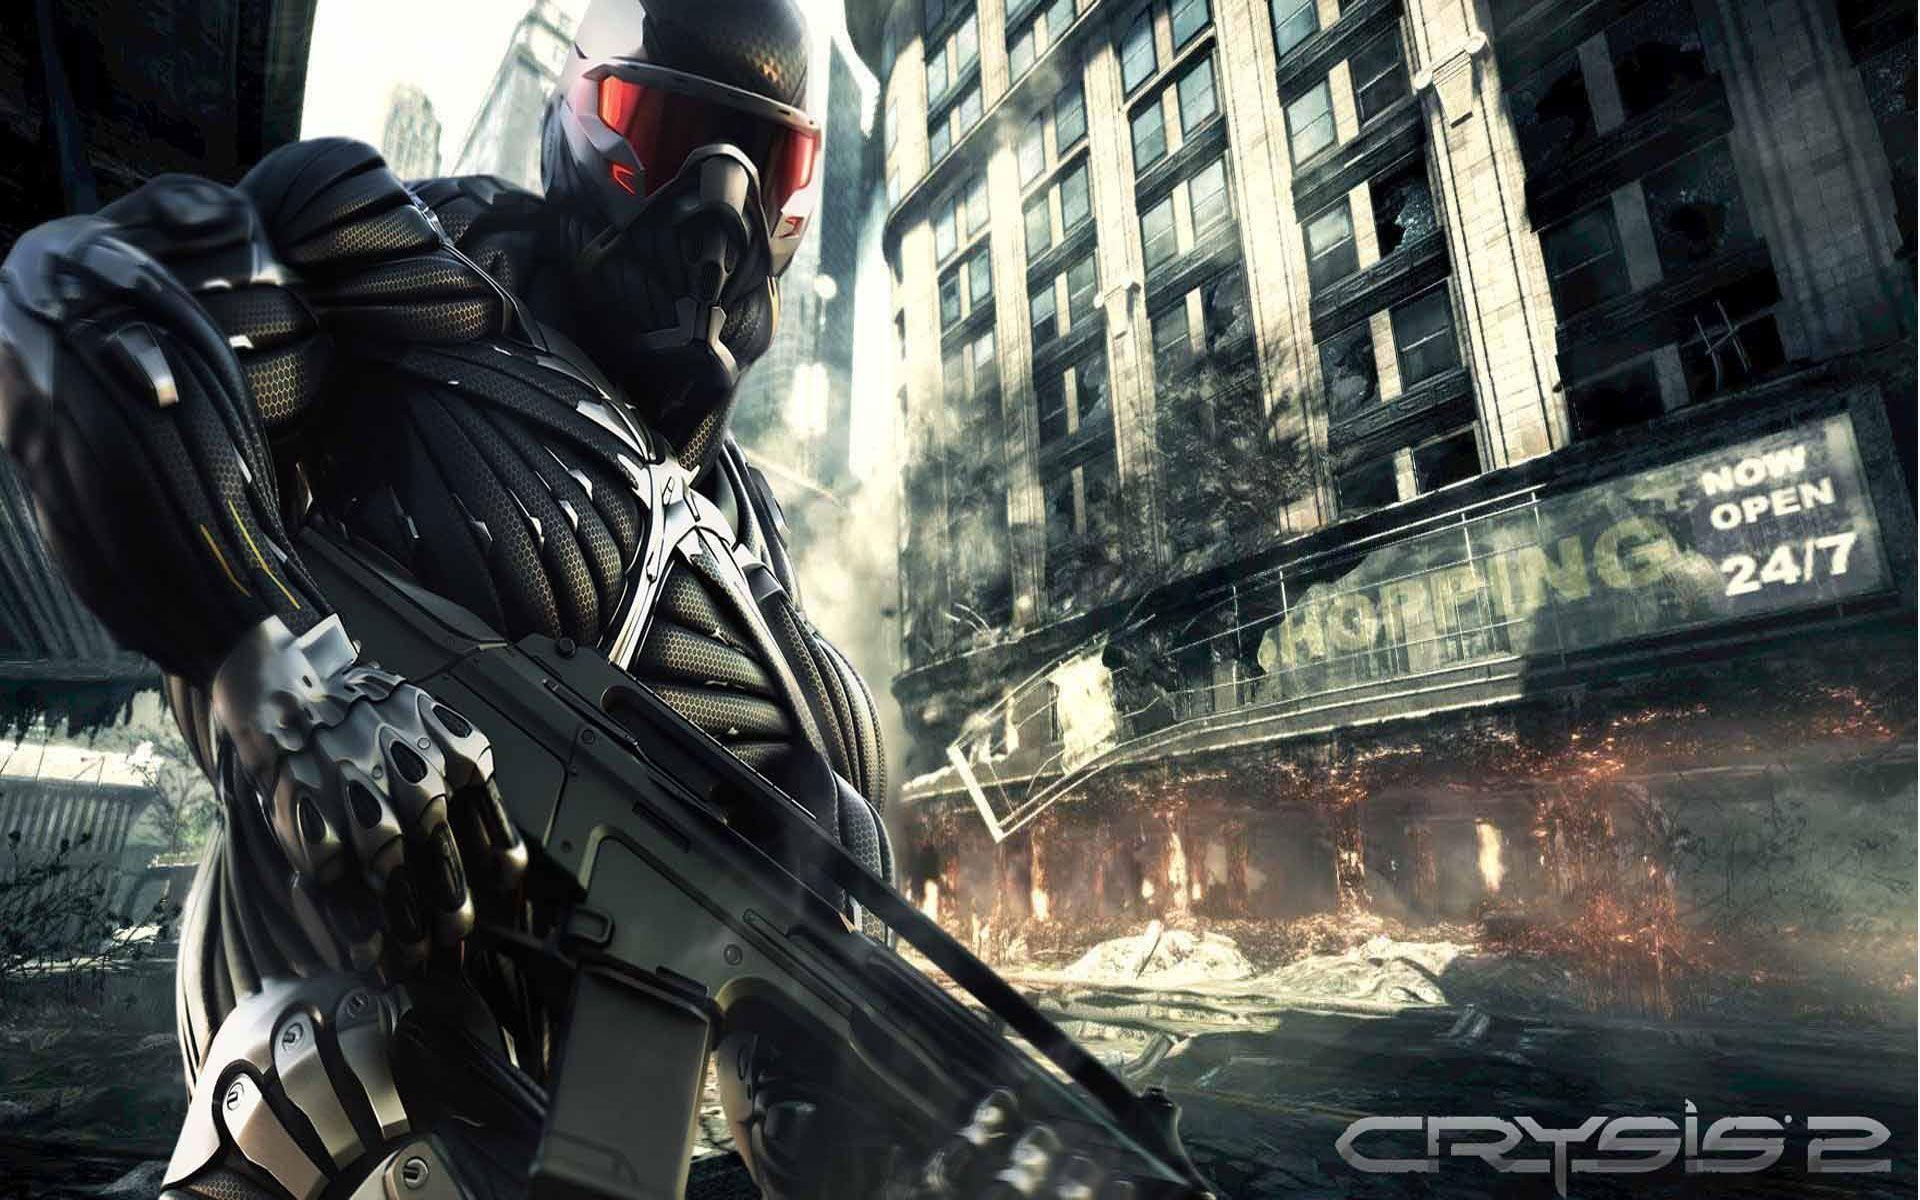 crysis 2 wallpapers wallpaper cave